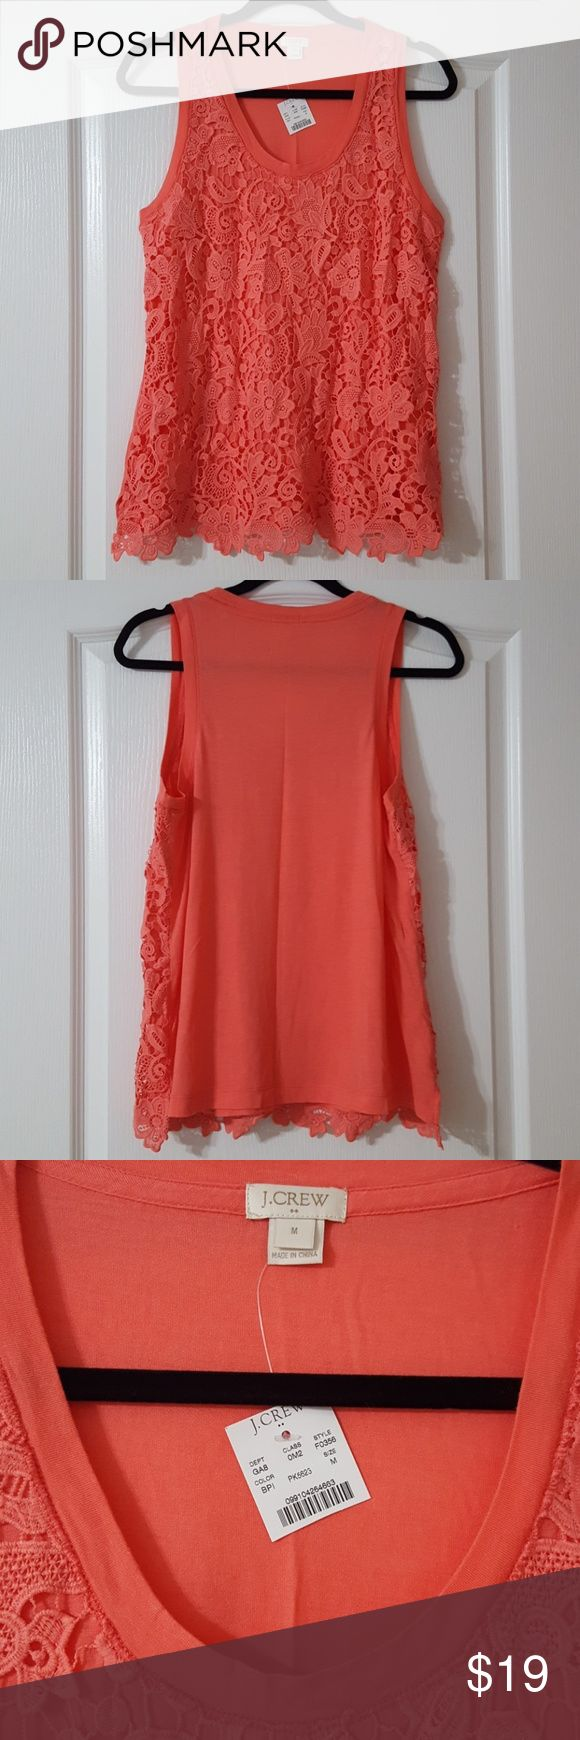 """J. Crew Crotchet-front Tank Top Modal rayon/Nylon  Salmon Pink color  Approx. 26"""" length, 18.5"""" across bust  Brand New with tag! J. Crew Tops Tank Tops"""